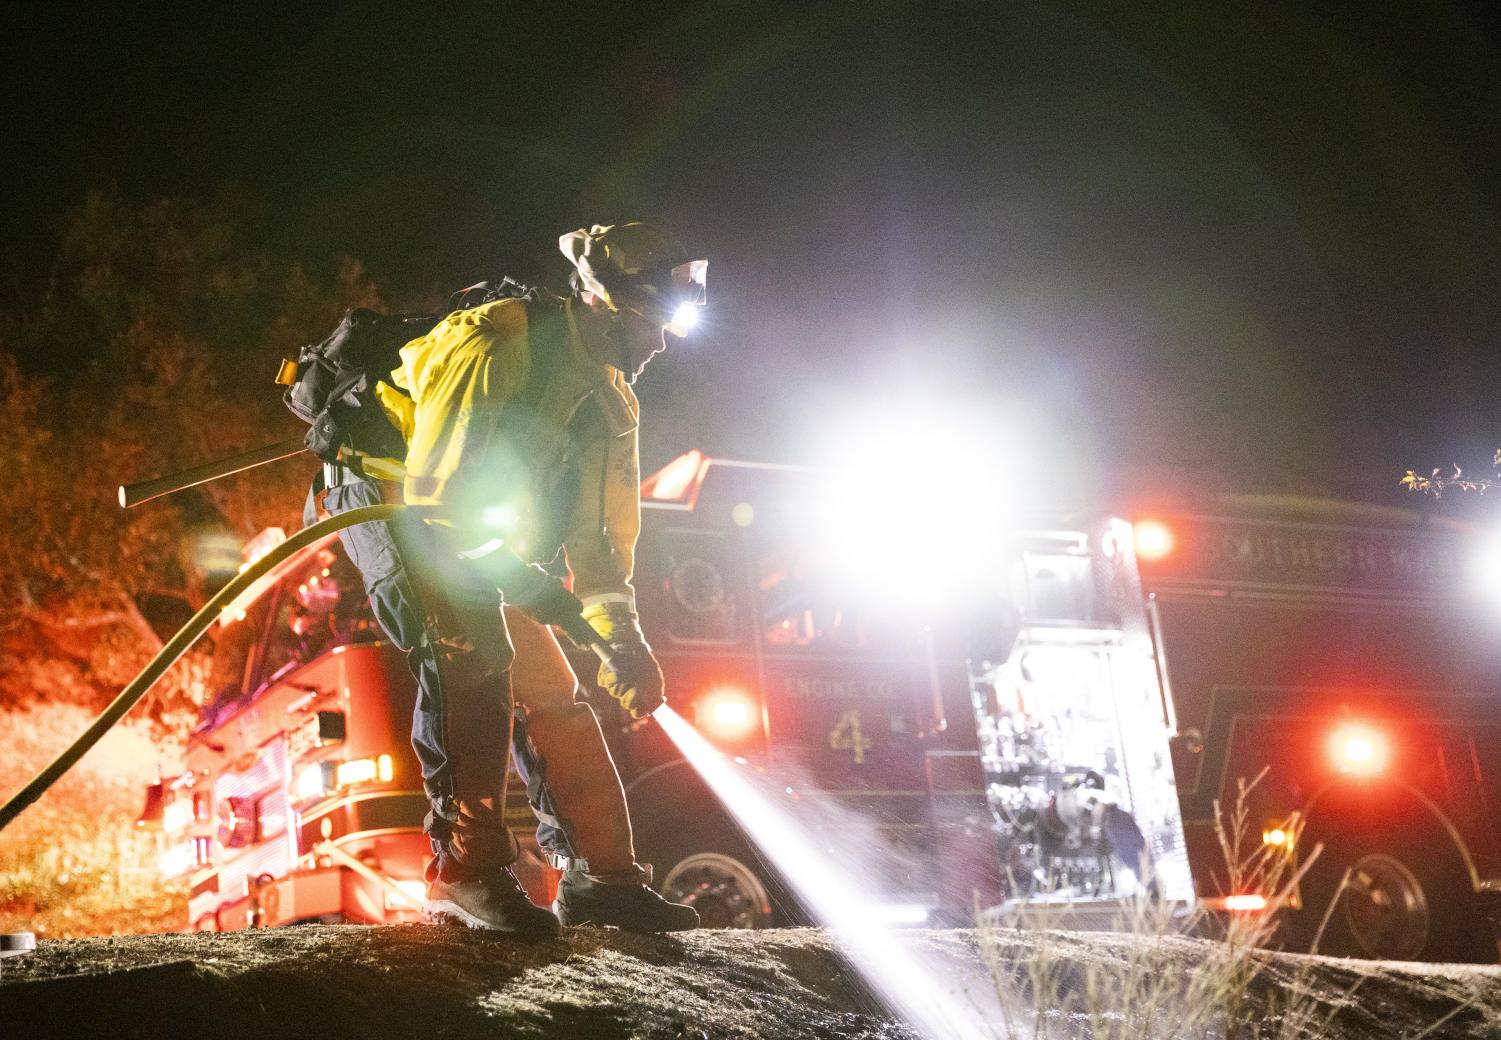 Marin County firefighters put out a small fire on Fern Canyon in Mill Valley the night before the power shutoff. (Ethan Swope)